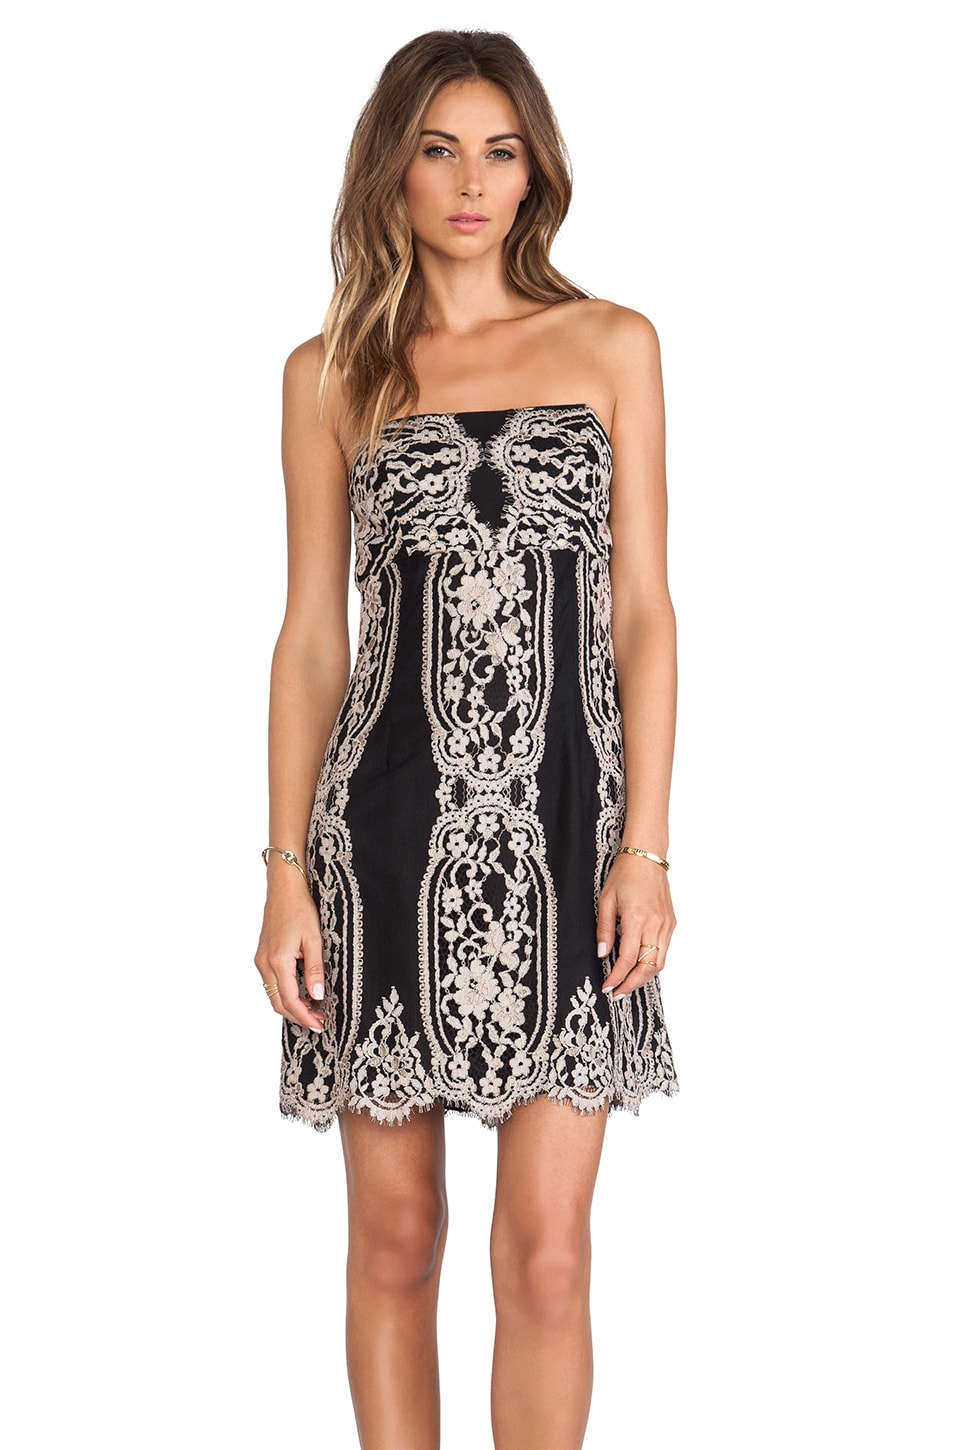 Anna Sui Two Tone Eyelash Lace Strapless Dress in Black